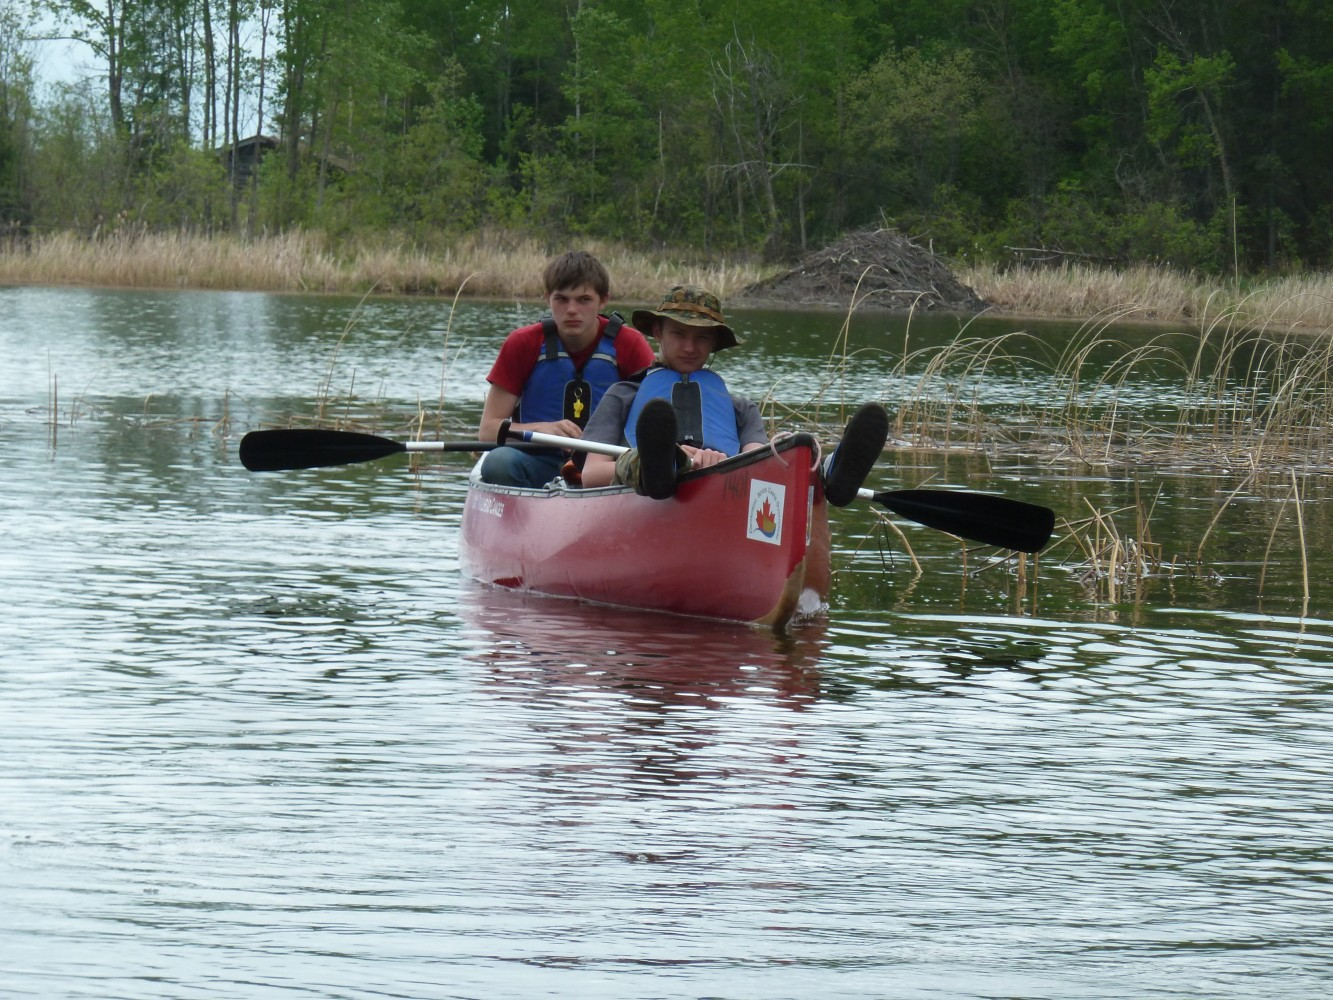 Bruno Central School Wilderness Canoe Trip 2016